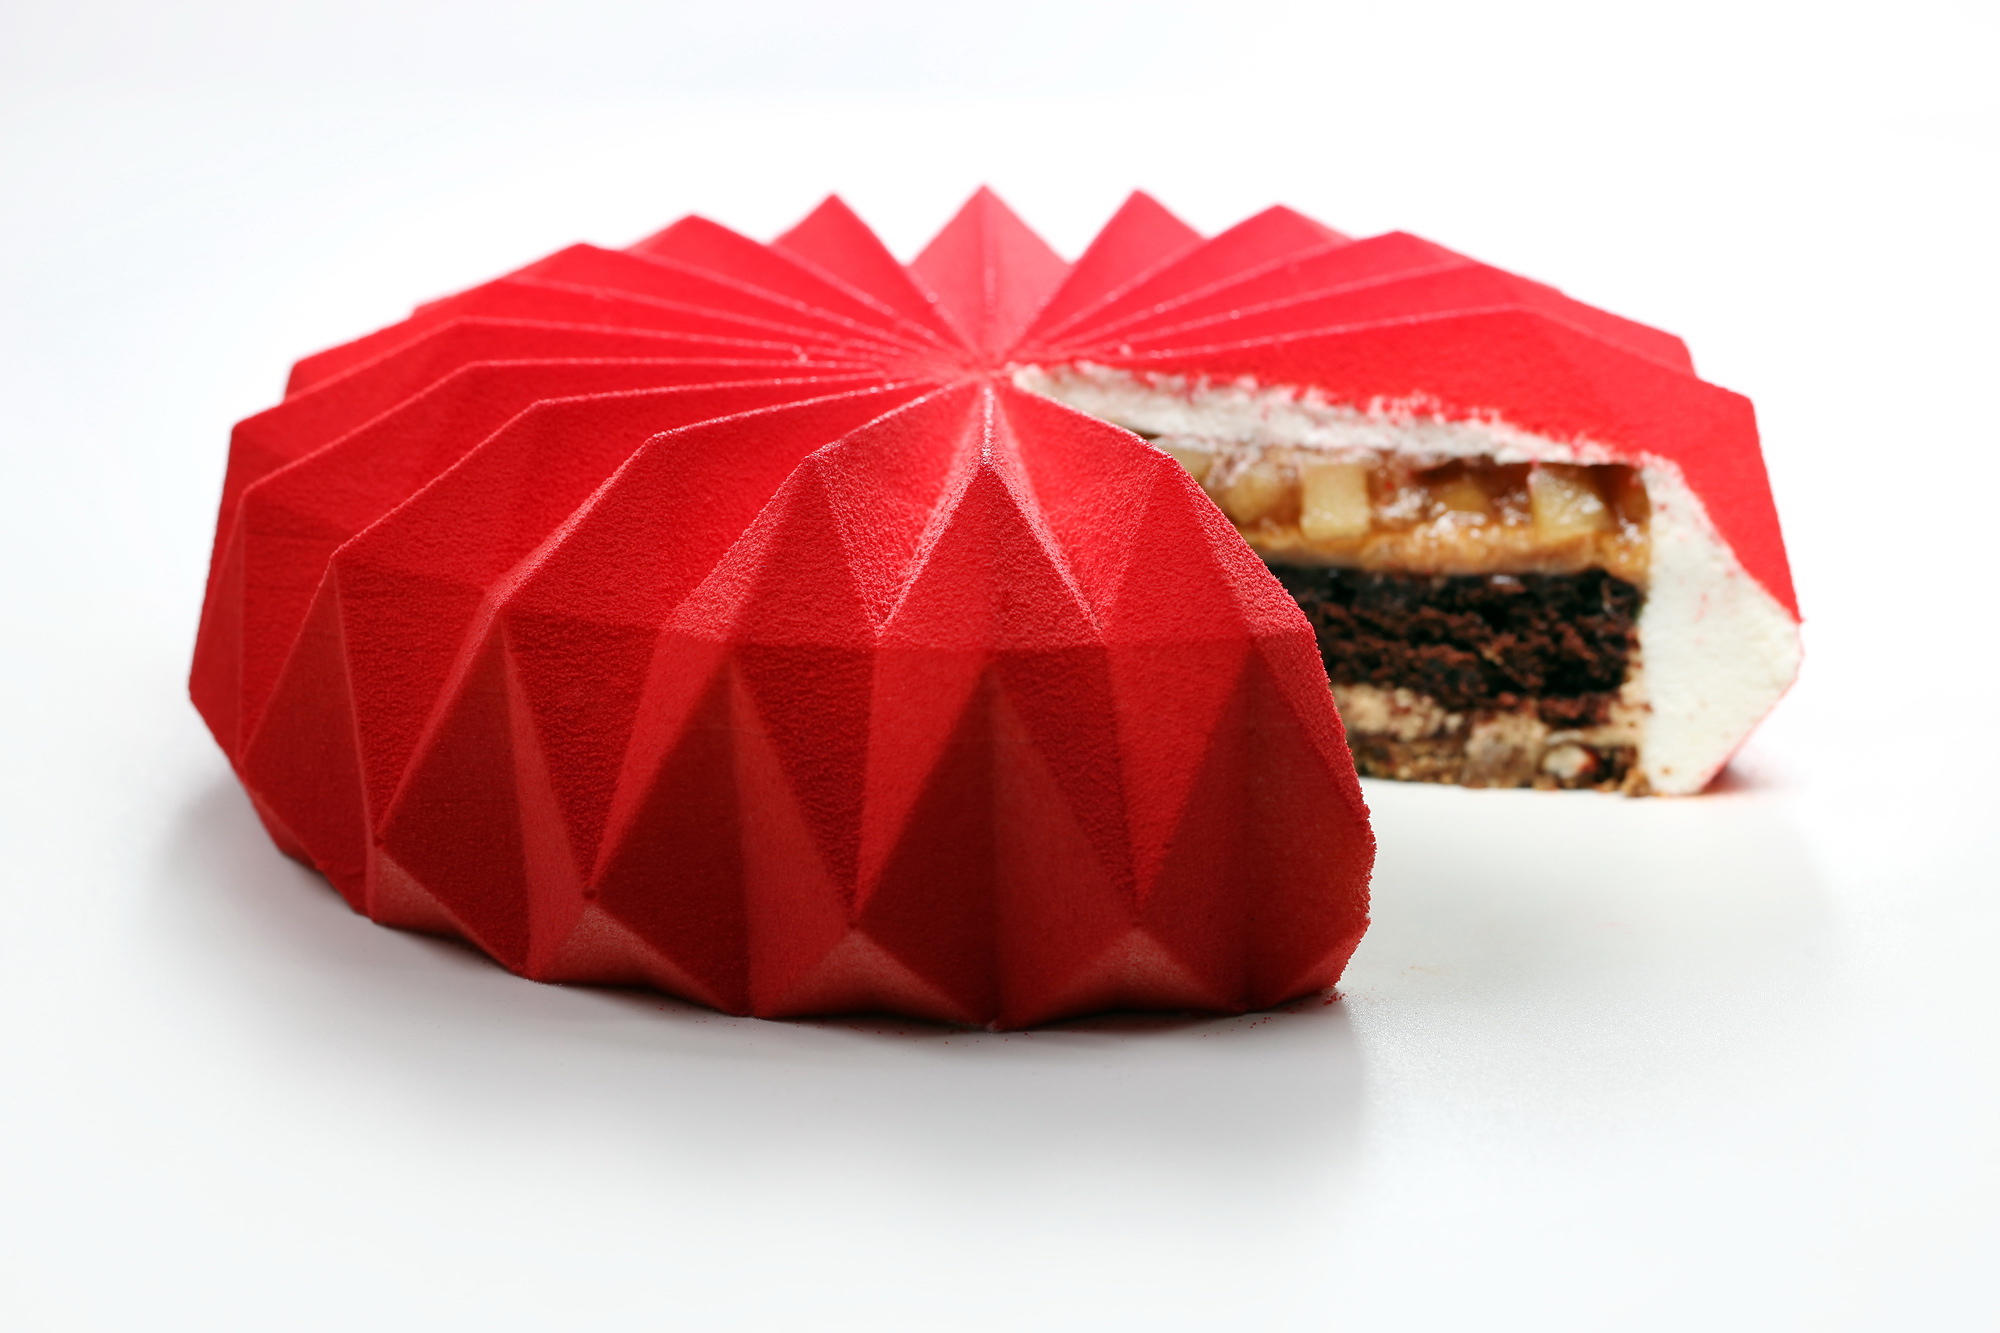 Tolle Desserts New Geometrically Inspired Pastries Cakes And Sweets By Dinara